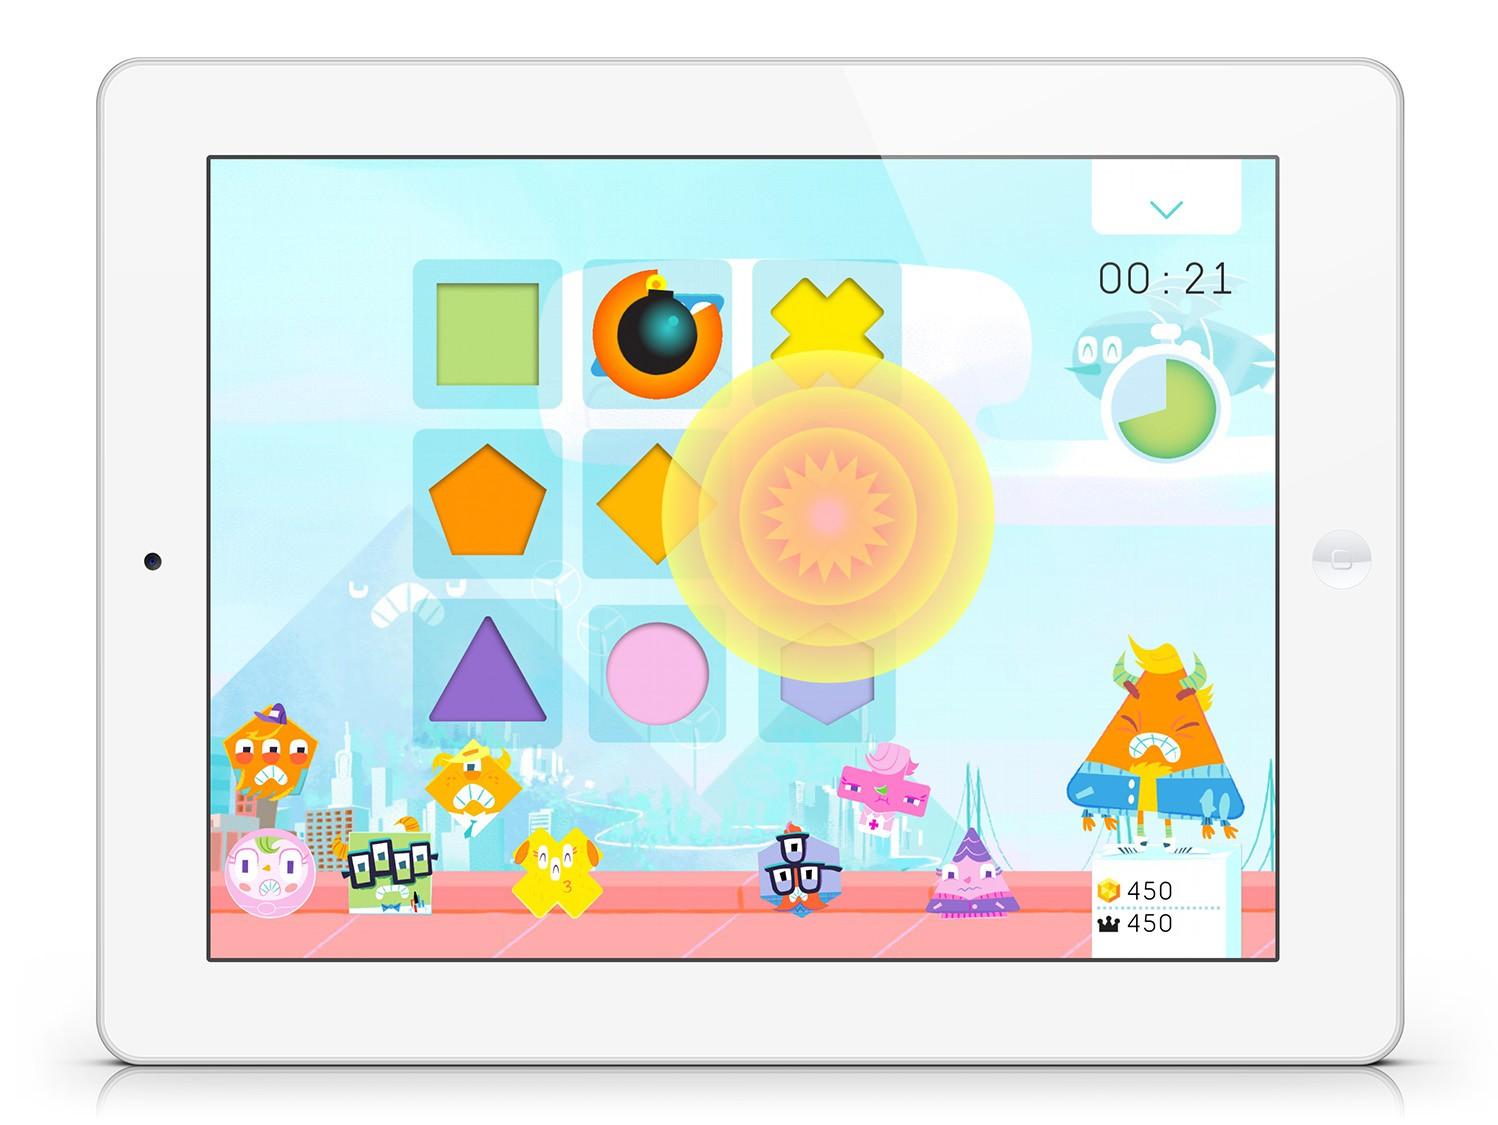 In-game screen of  Monster Pow!,  a beat-the-clock shape matching game.